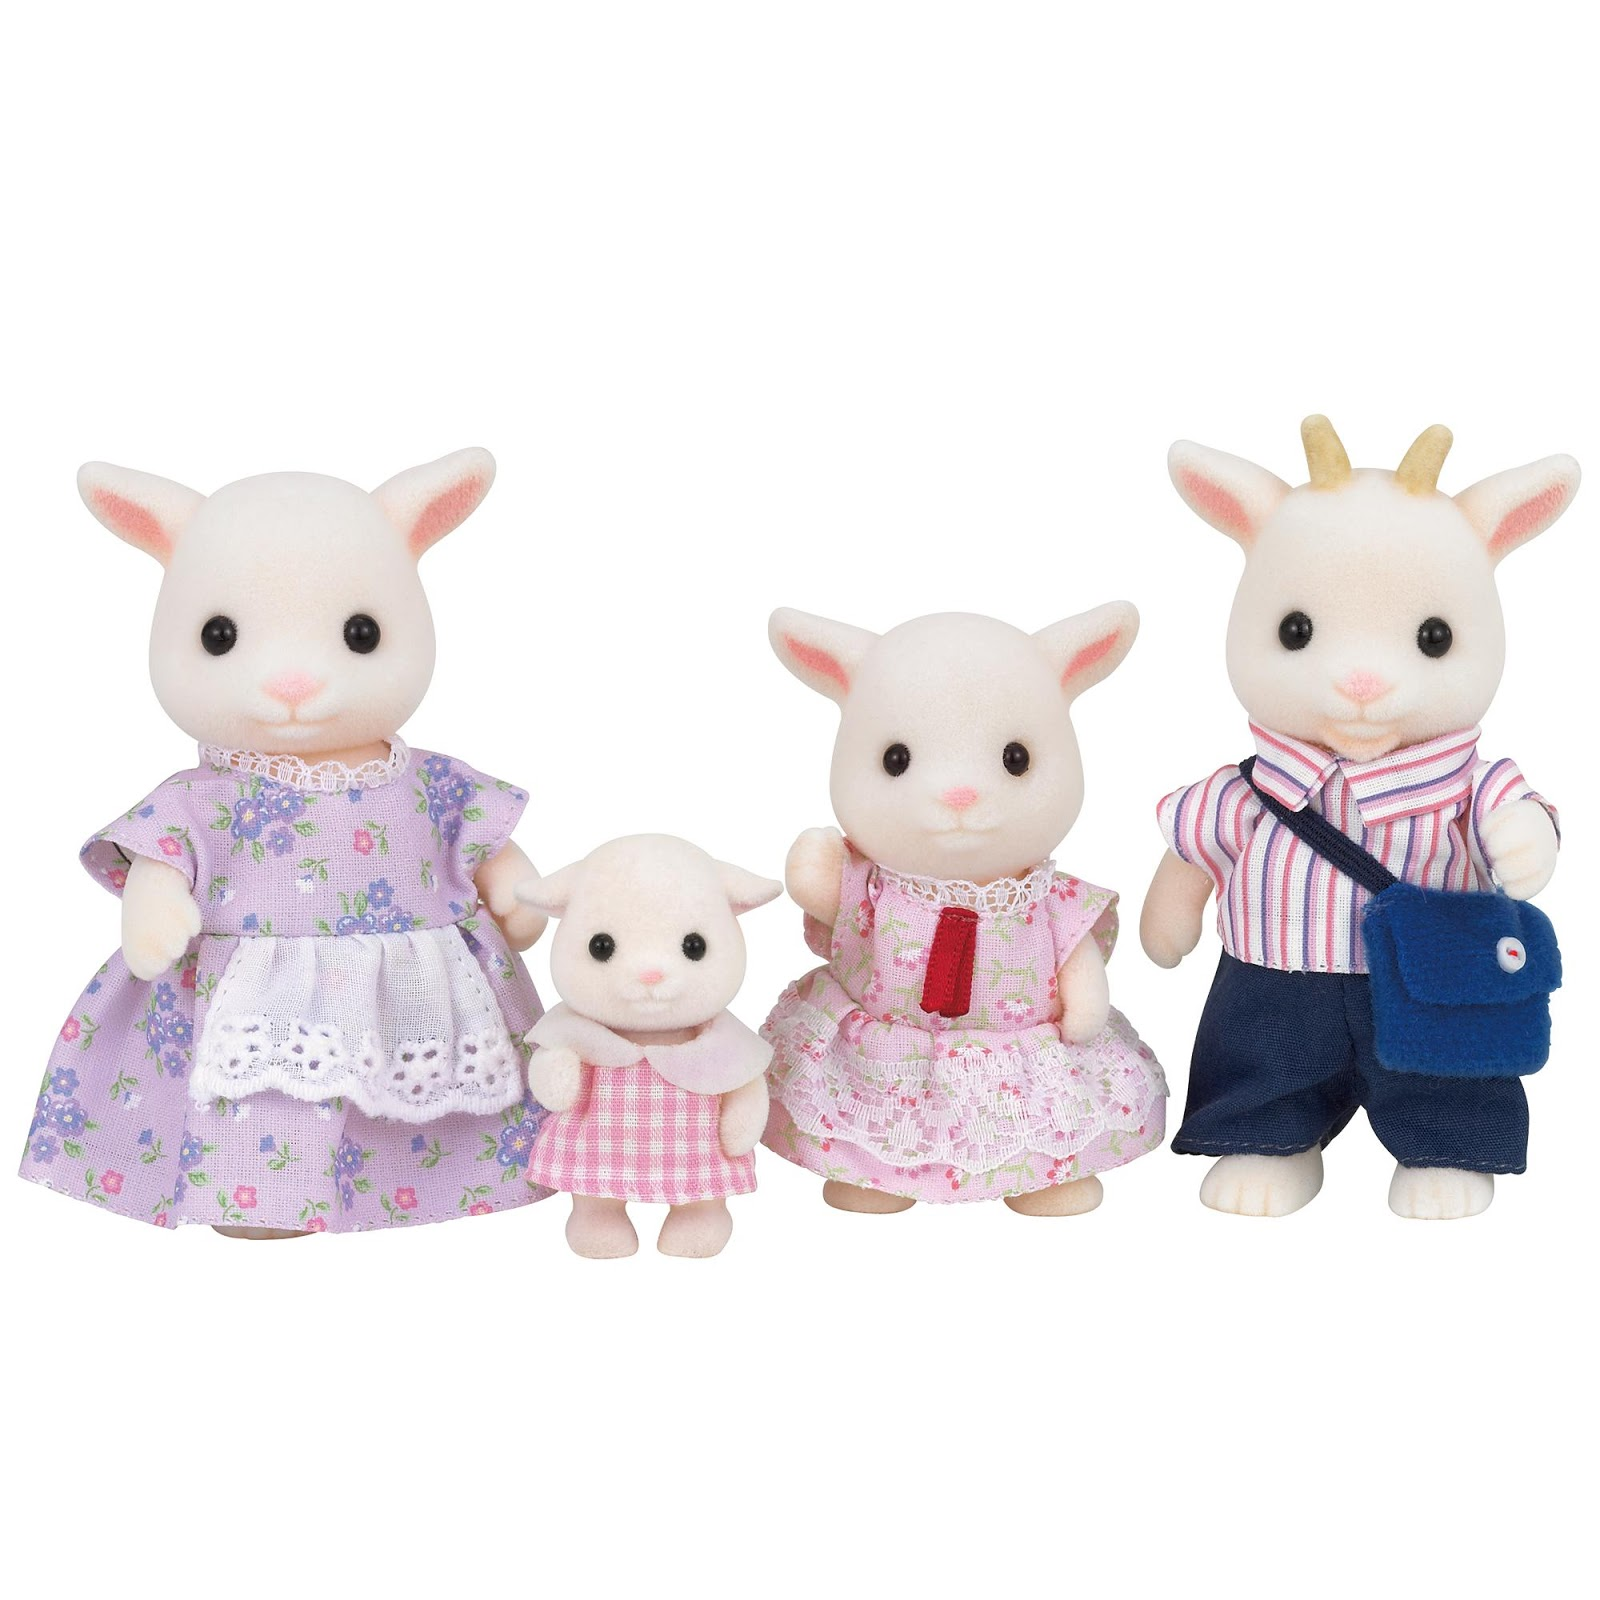 Lily's Sylvanian Families Blog